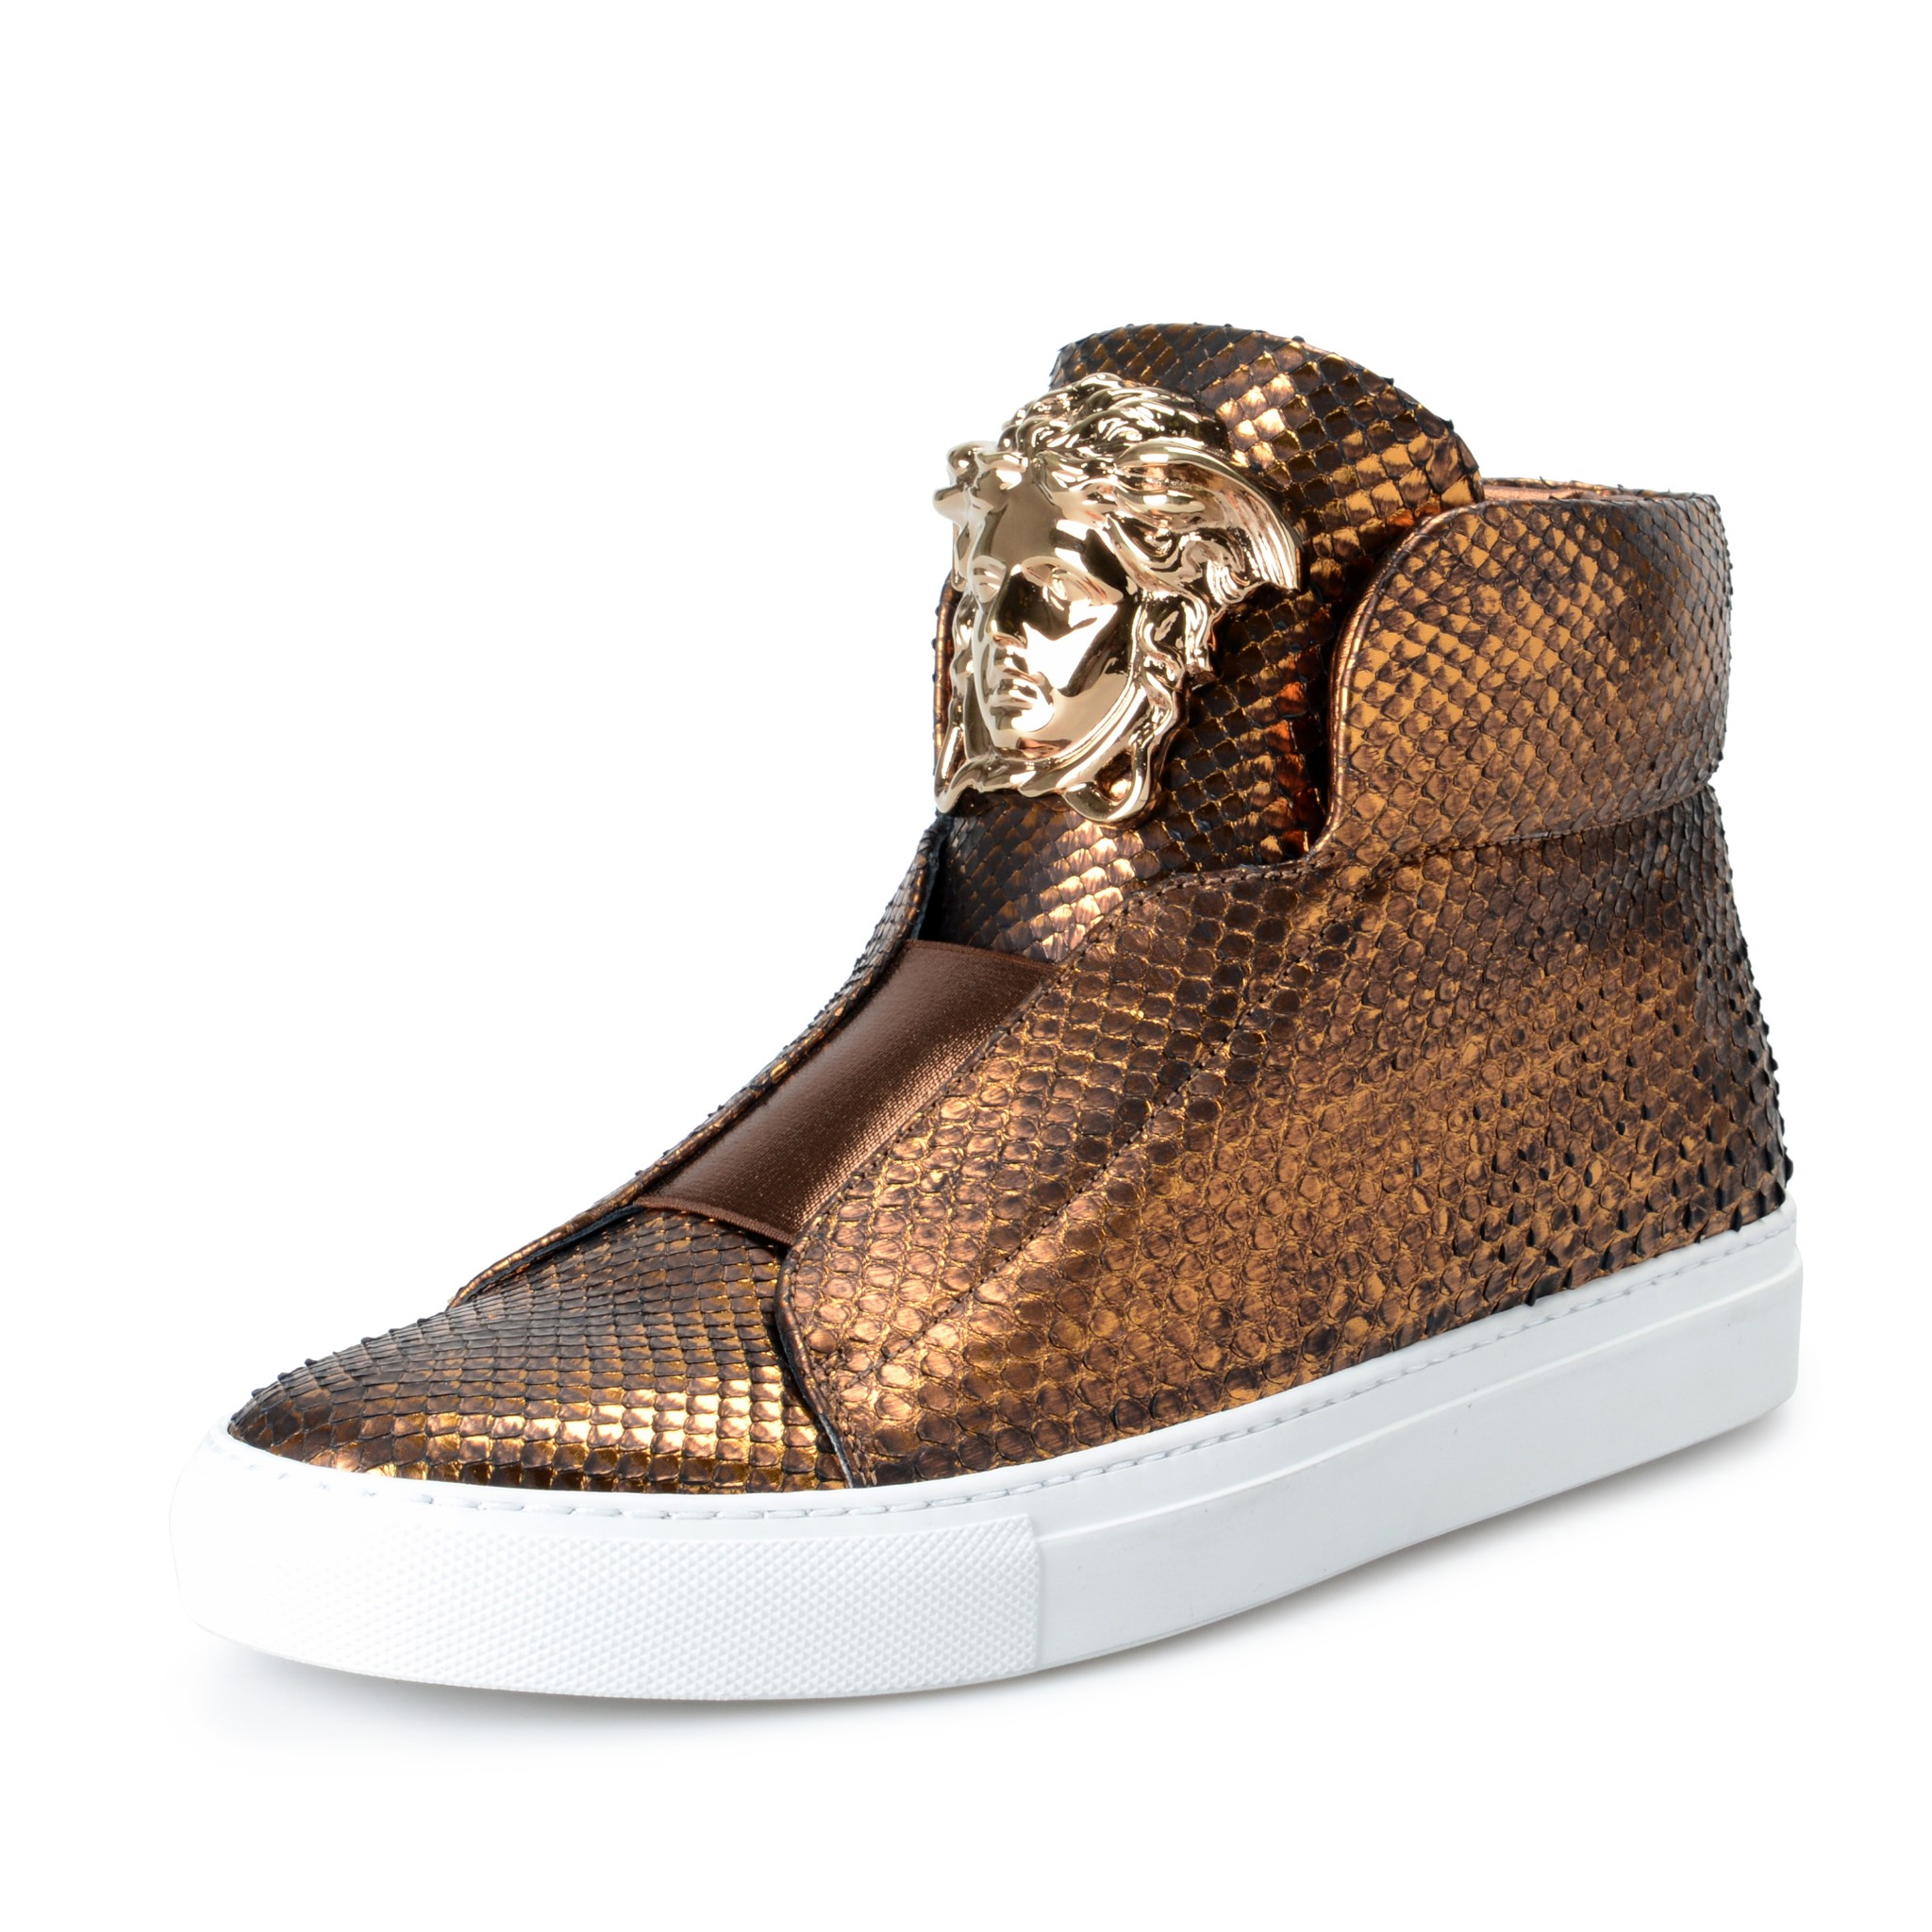 f924baf4a0 Details about Versace Men's Python Skin High Top Slip On Fashion Sneakers  Shoes US 7 IT 40